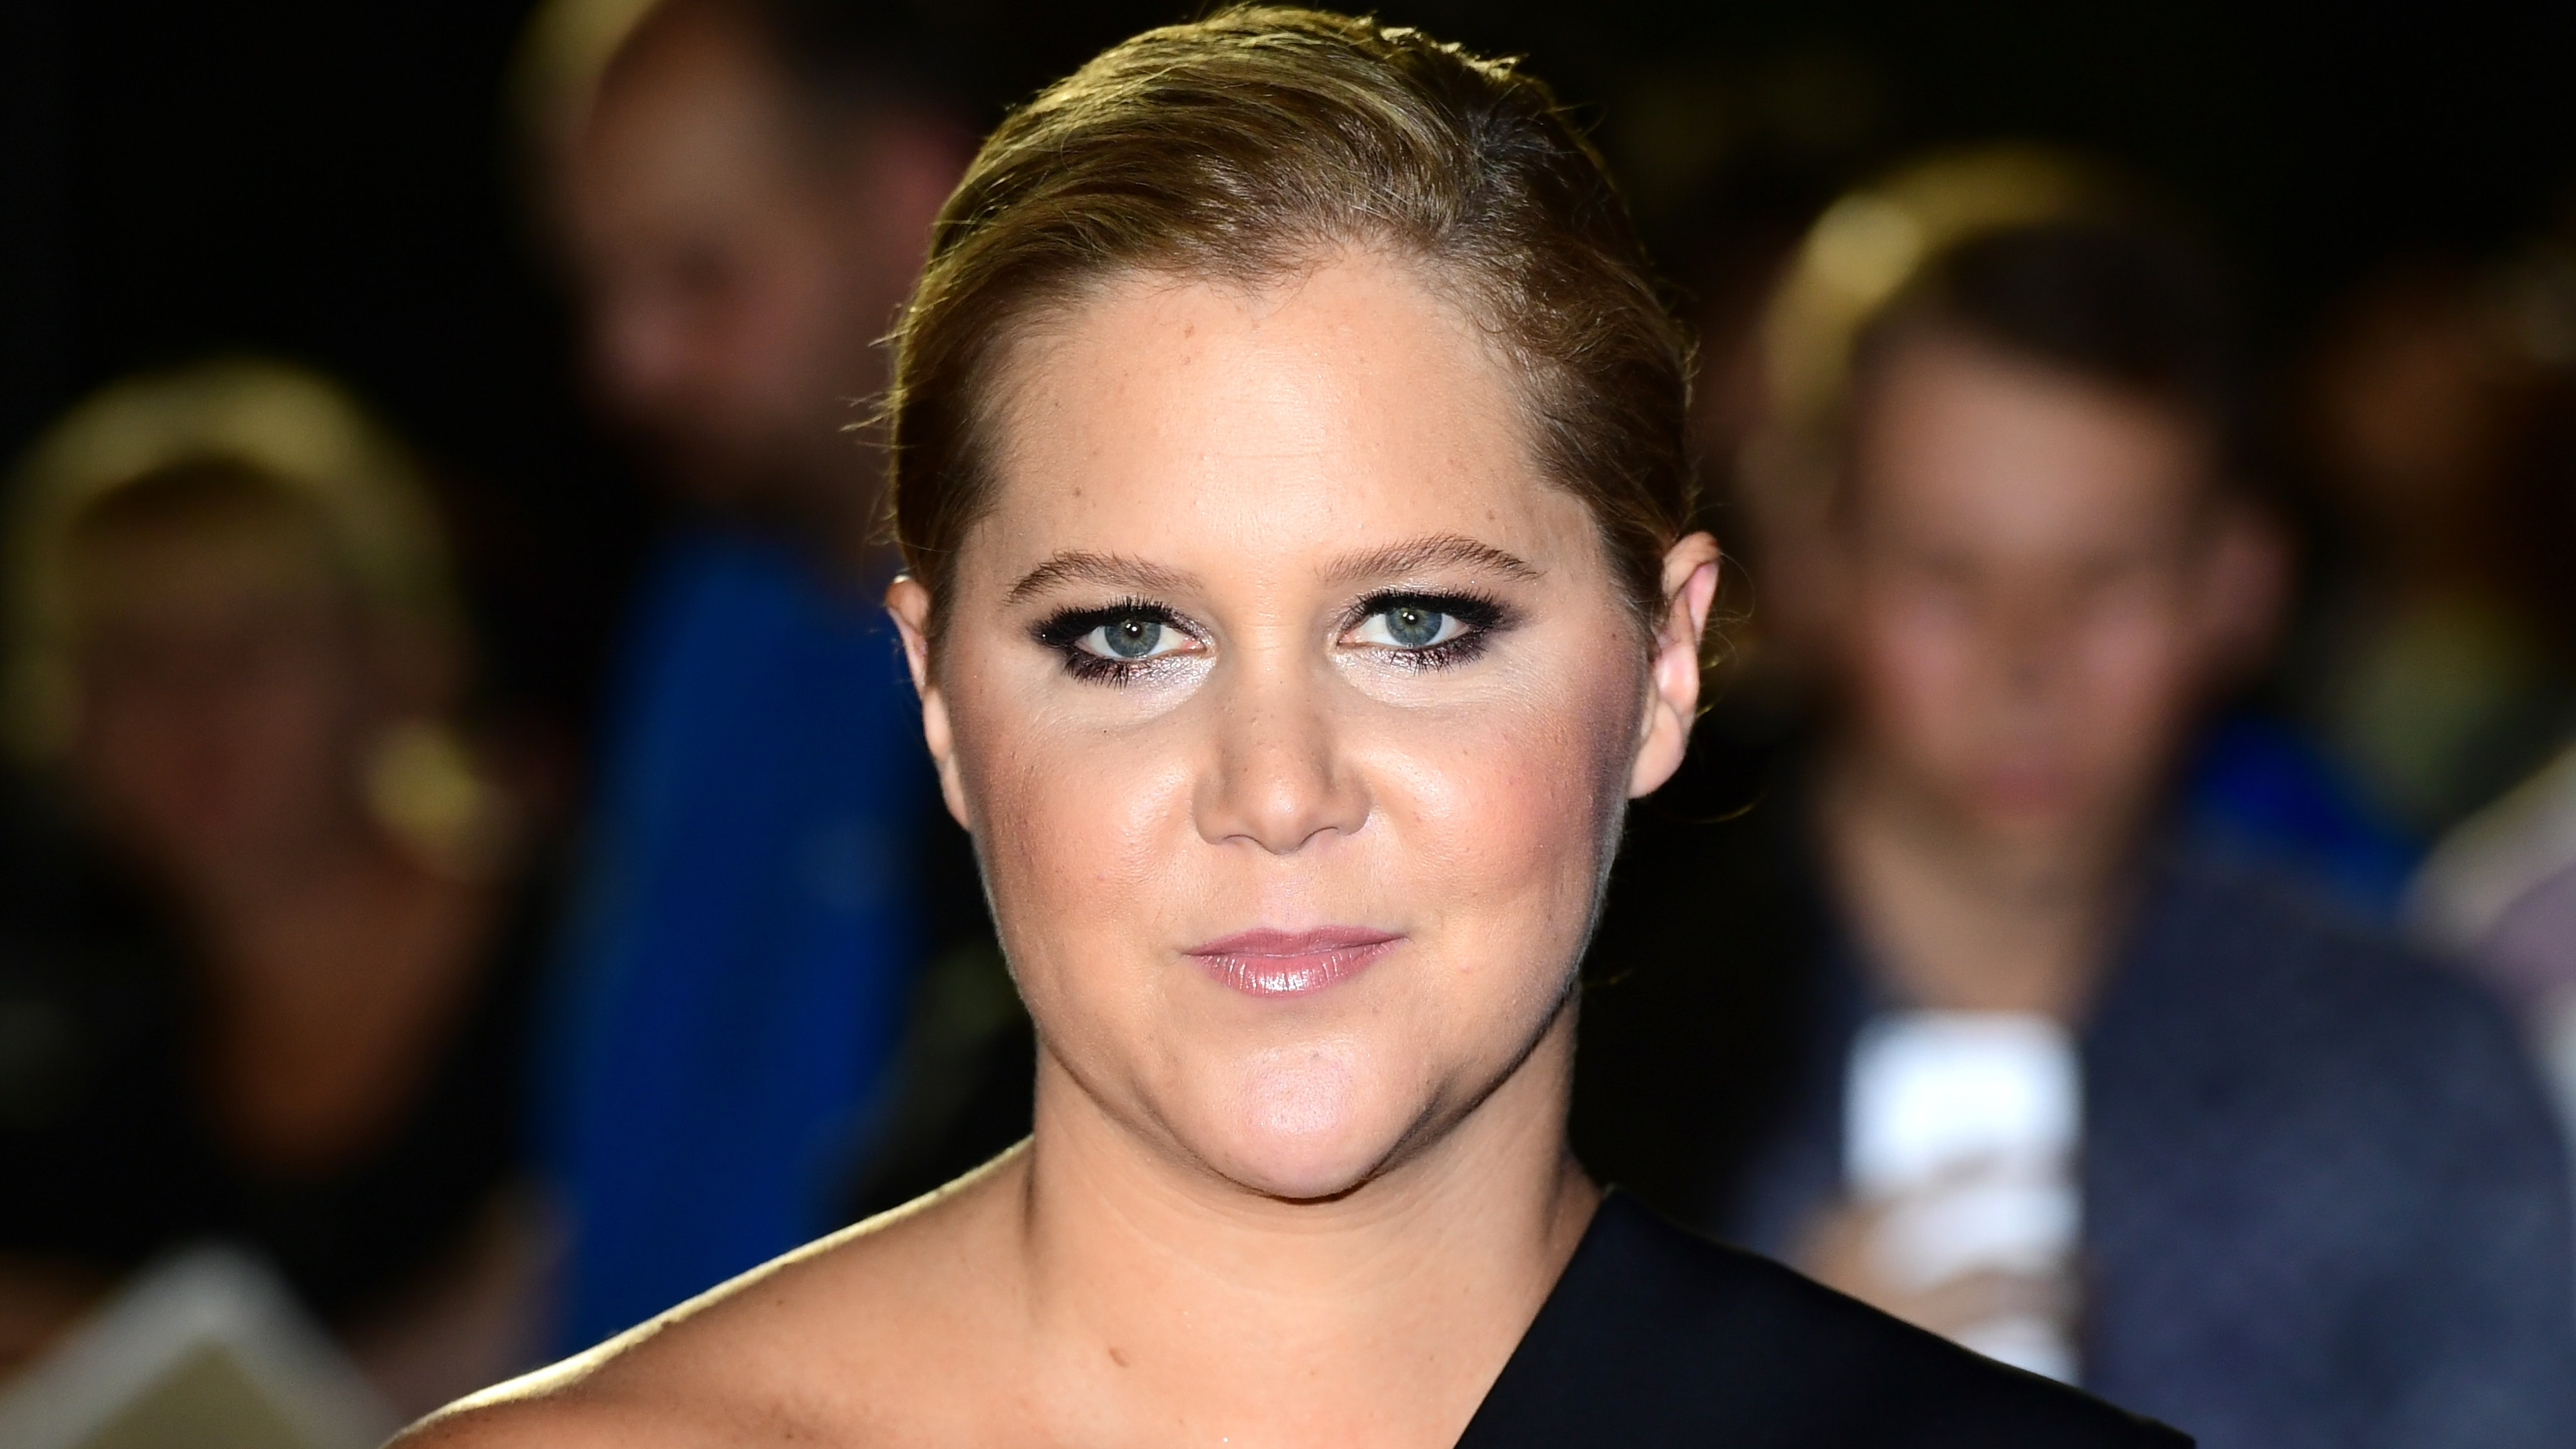 Amy Schumer Sex Video amy schumer says she is 'staying positive' as she shares ivf